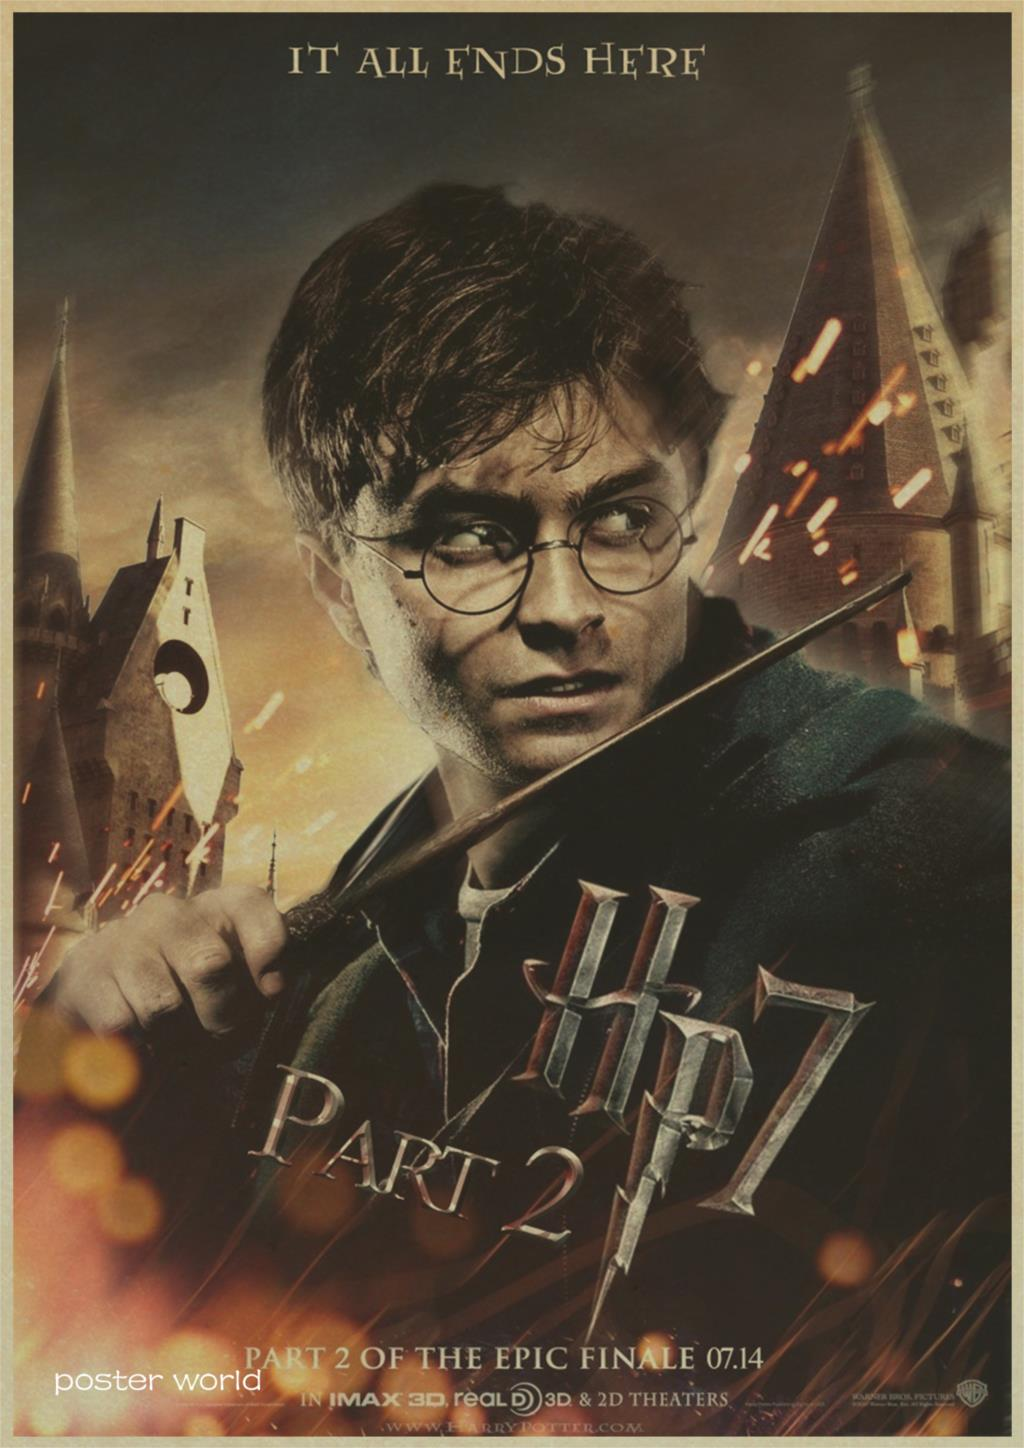 Harry Potter magic world poster series Vintage Retro Matte Kraft Paper Antique Poster Wall Sticker Home Decora